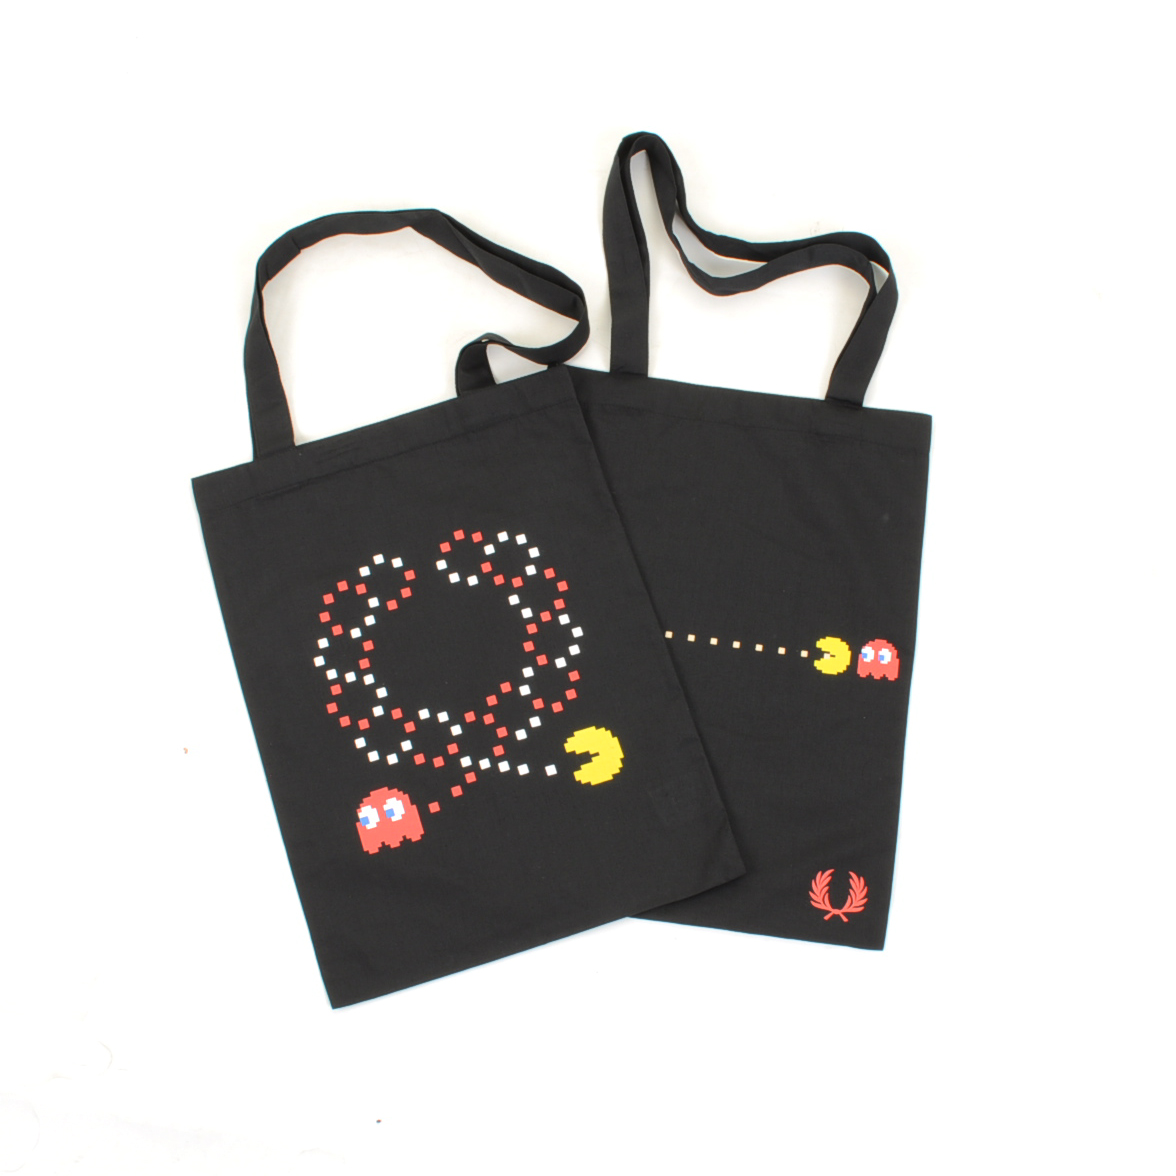 Fred Perry x Pac Man x Ten_do_Ten Free Tote Bag